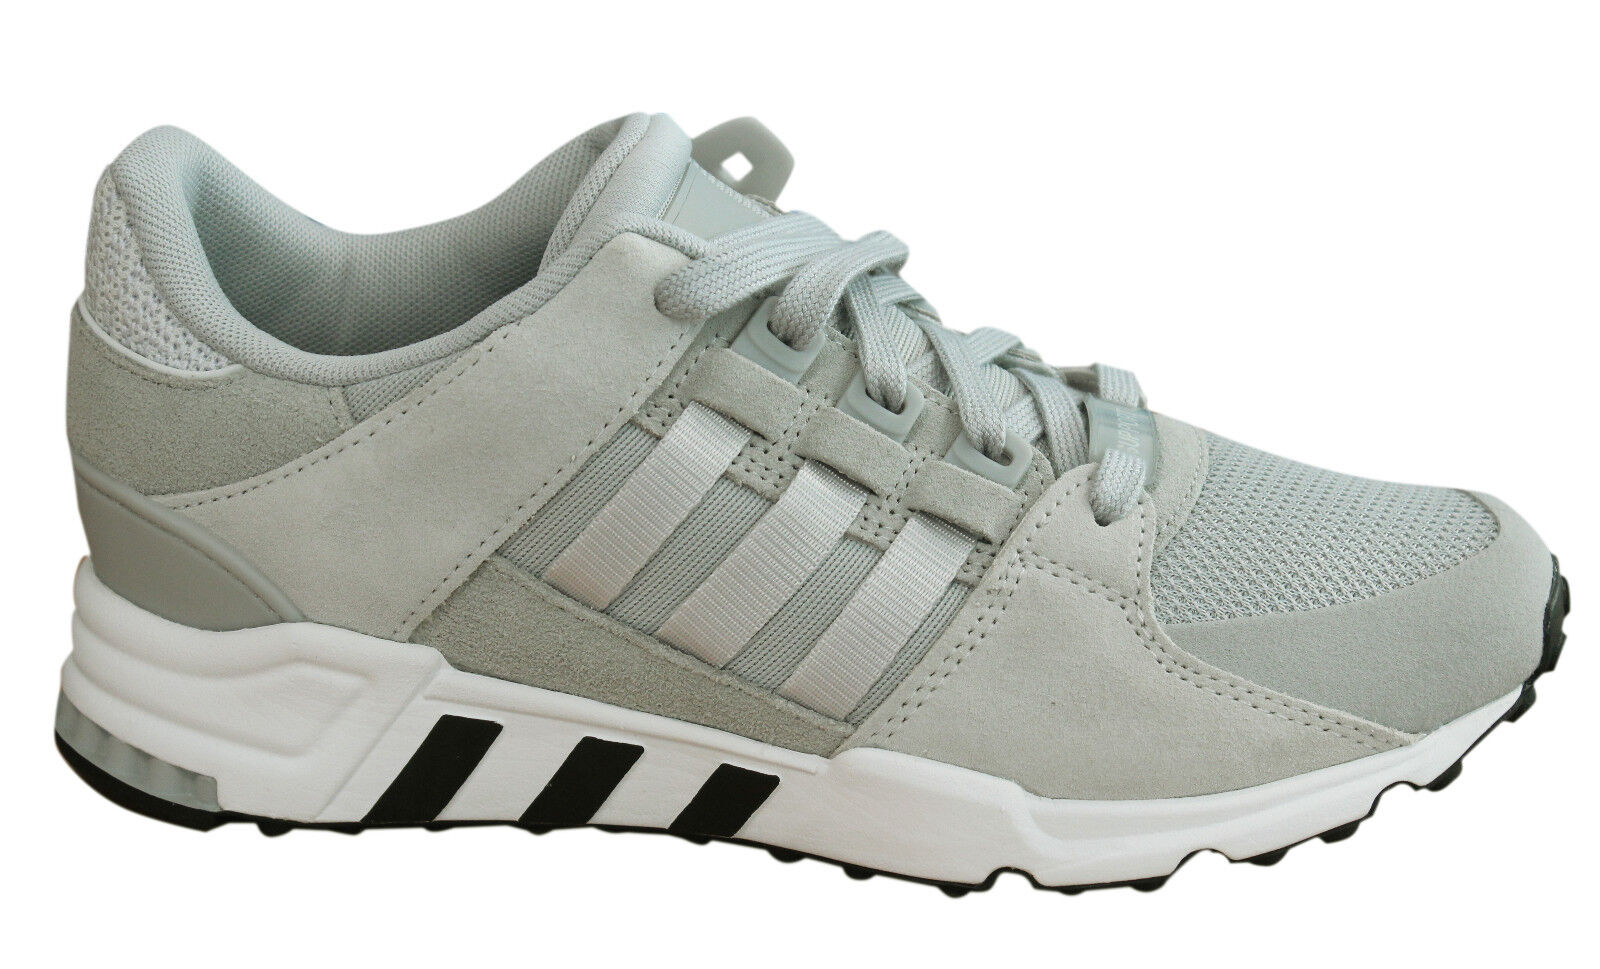 Adidas Equipment Support Refined Mens Trainers Lace Up Shoes Grey BY9622 M17